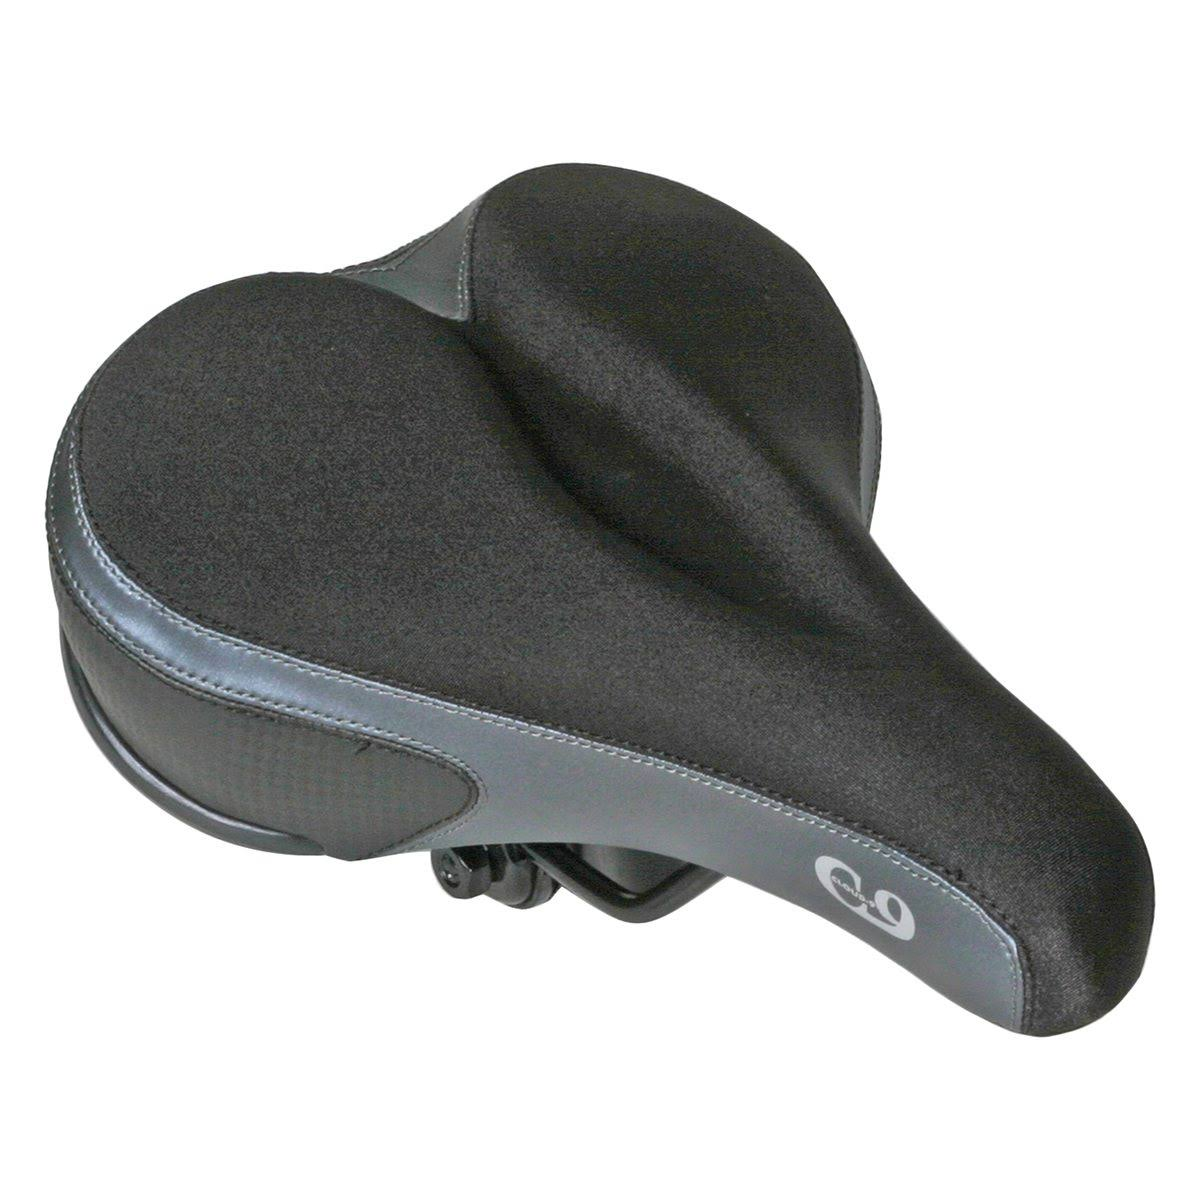 "Cloud 9 Comfort Men's Saddle - 11"" x 7.75"""